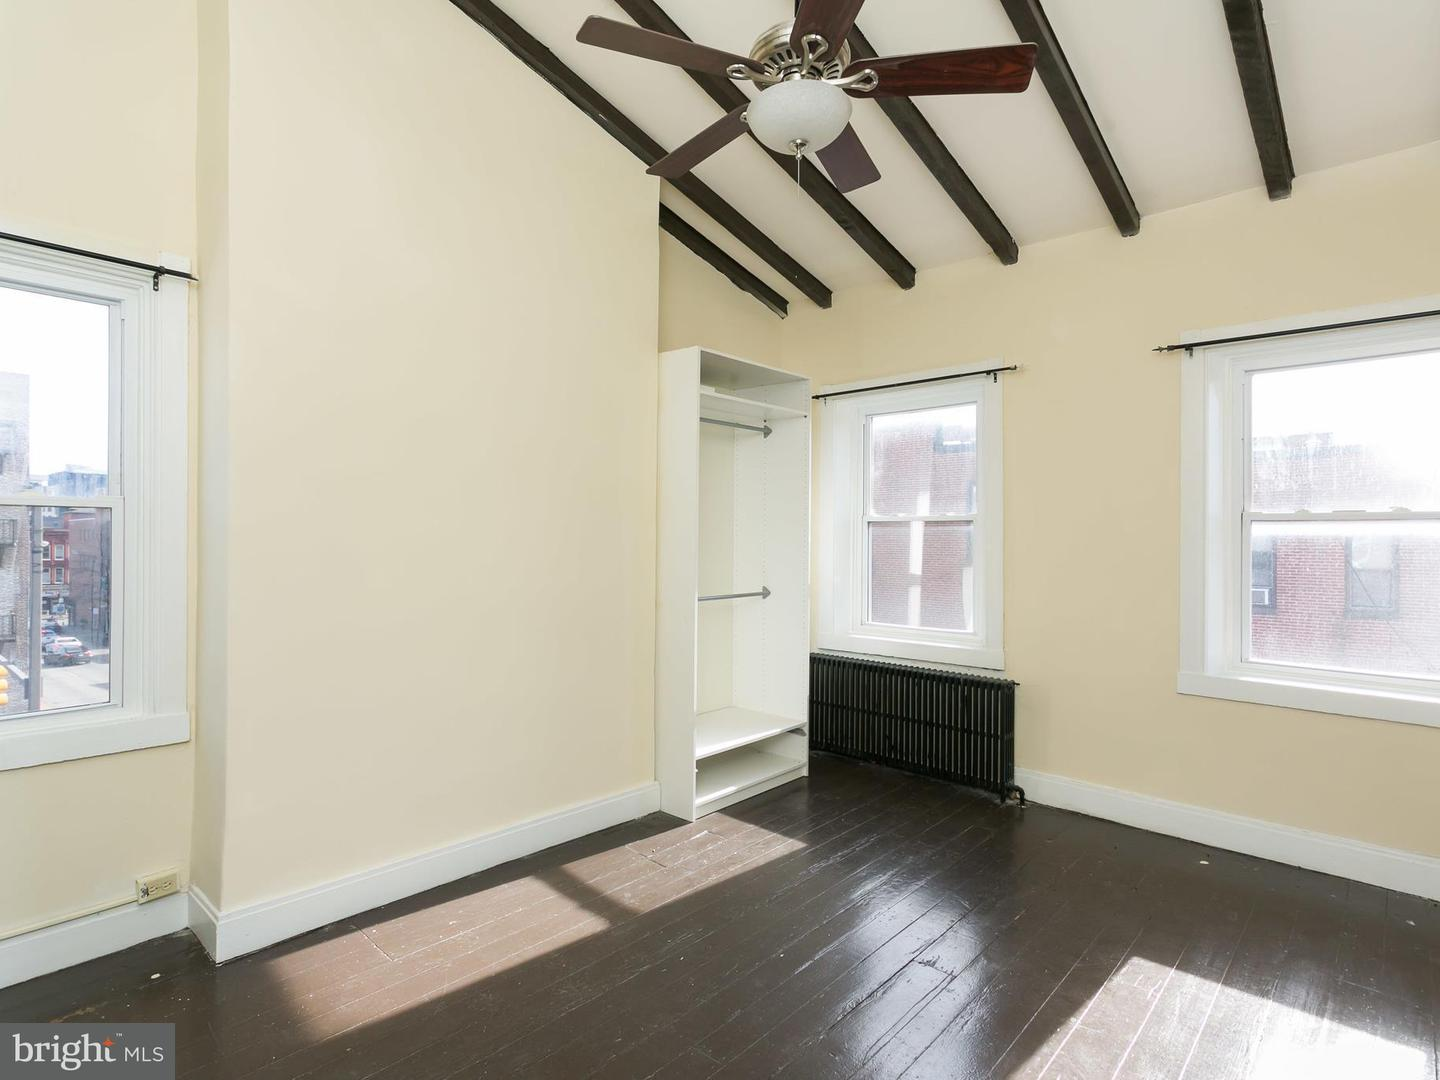 Other Residential for Sale at 504 Mulberry St W Baltimore, Maryland 21201 United States